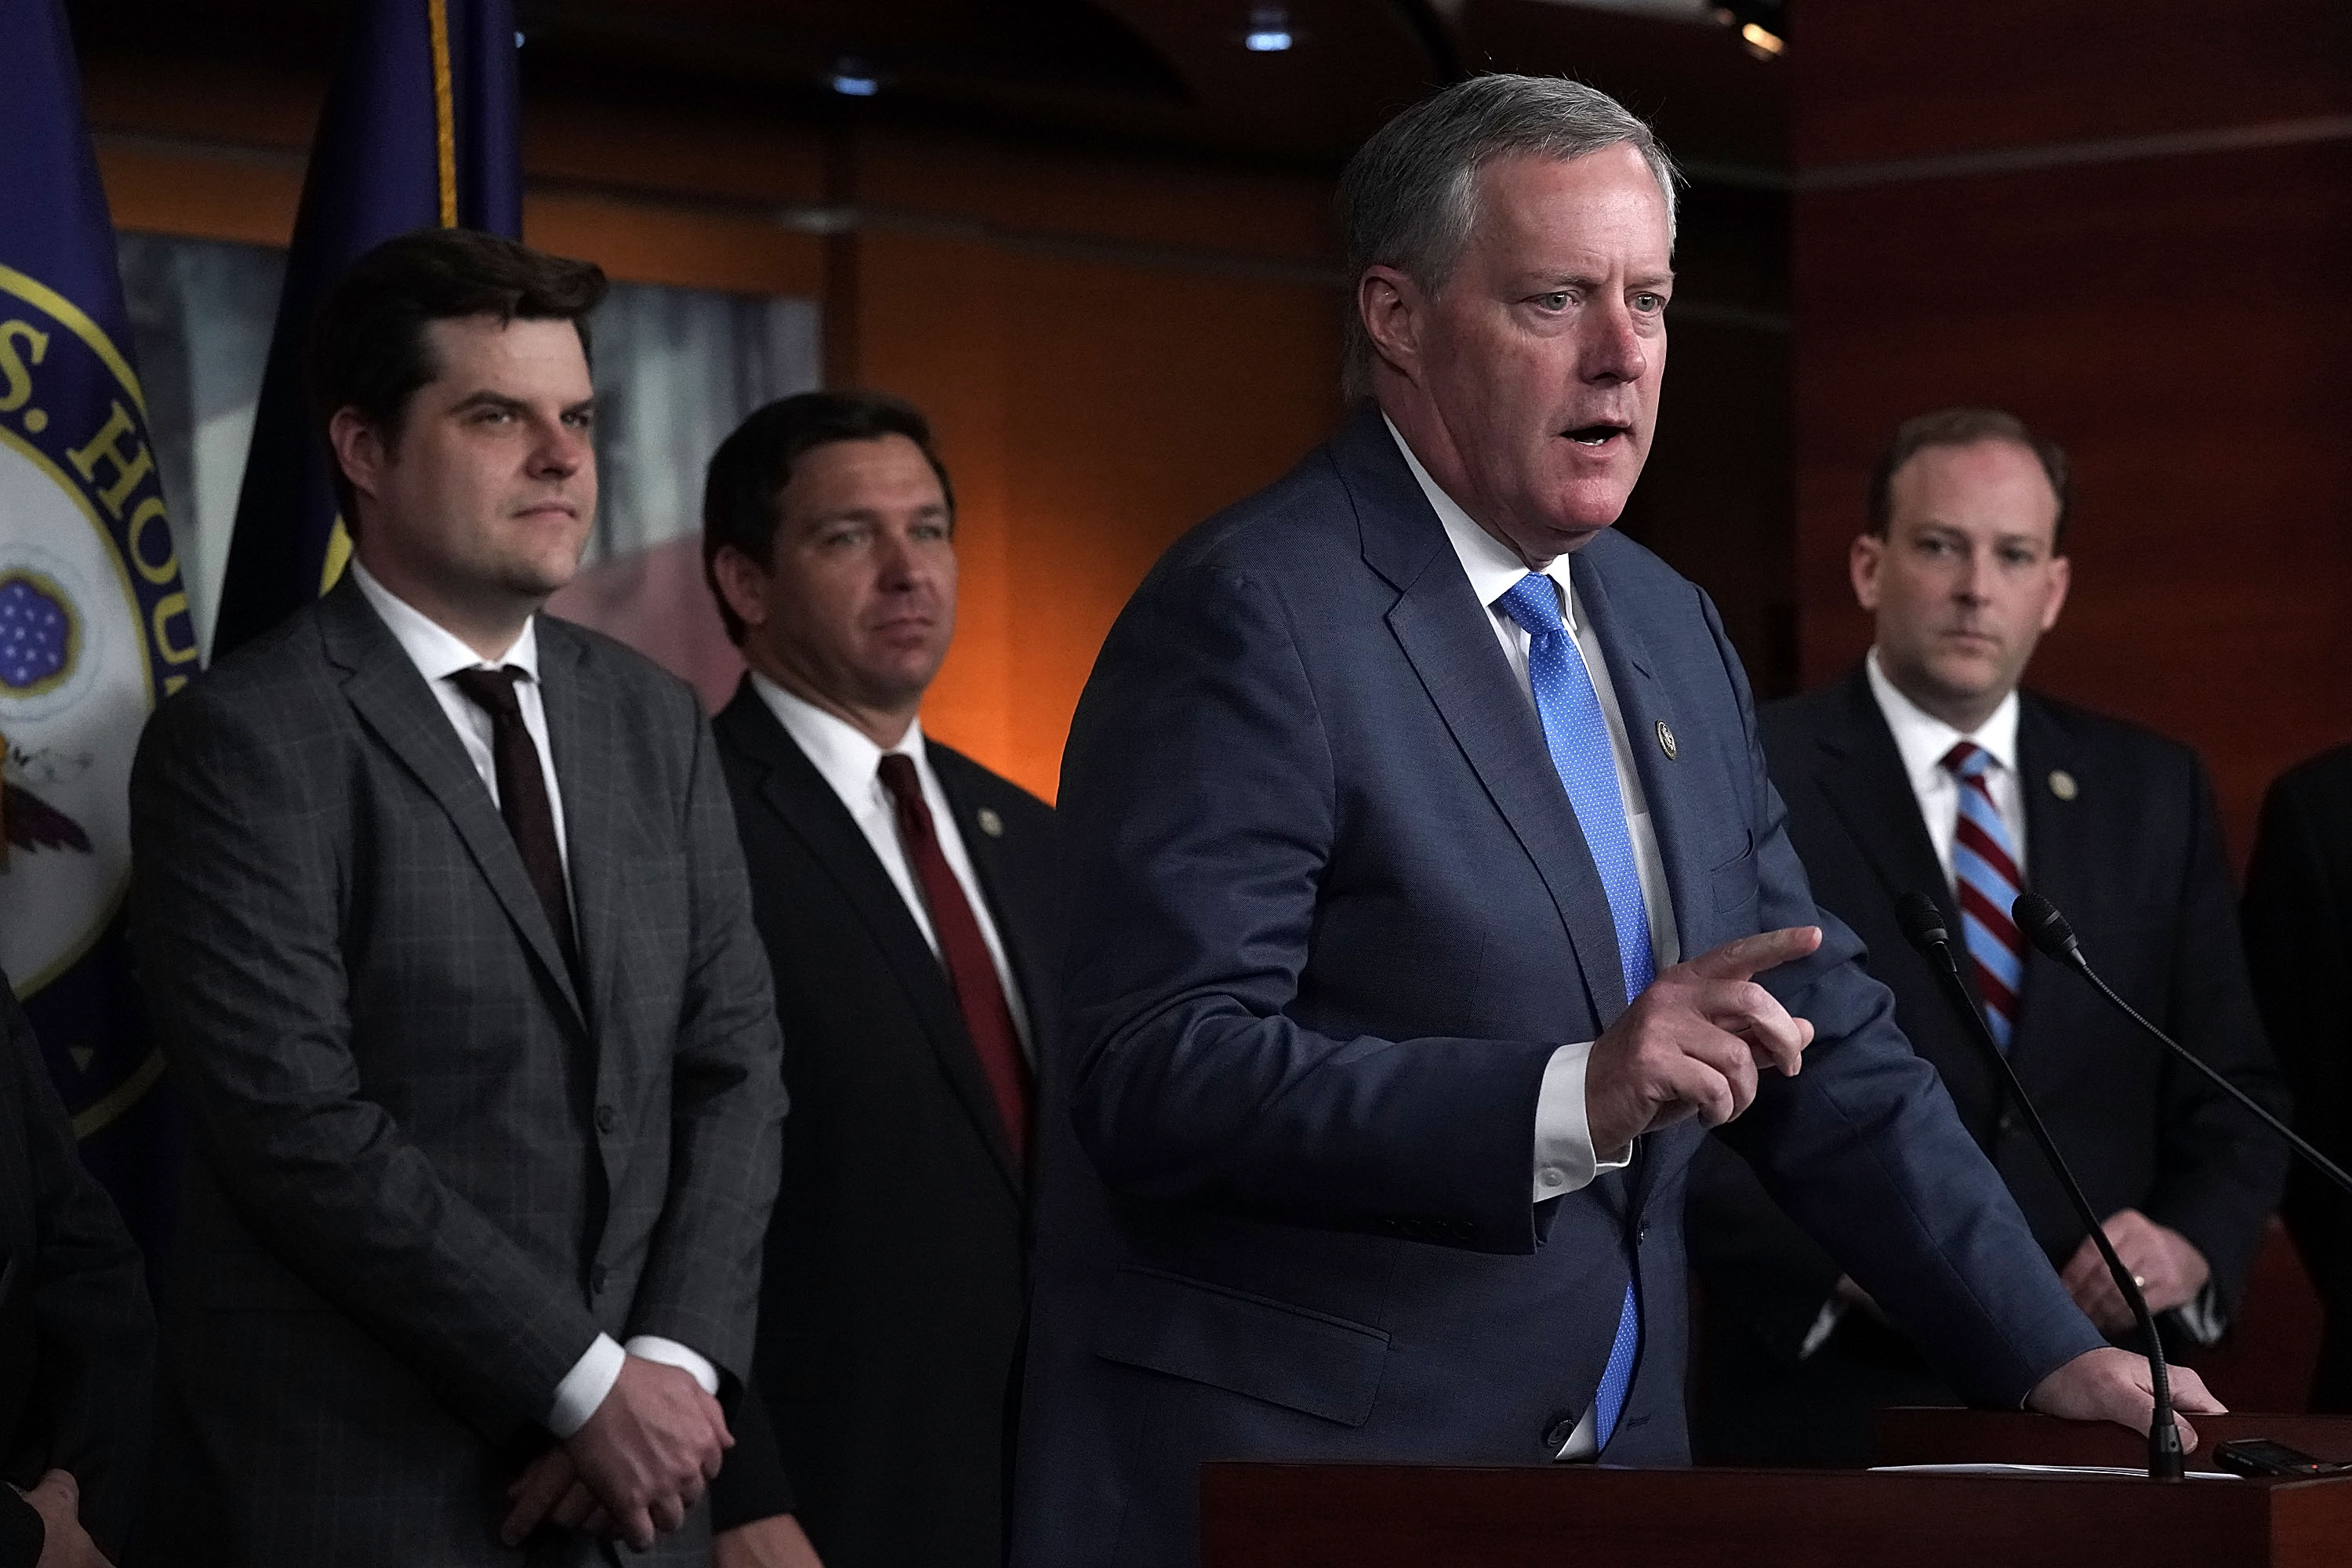 U.S. Rep. Mark Meadows speaks as (L-R) Rep. Matt Gaetz, Rep. Ron DeSantis and Rep. Lee Zeldin listen during a news conference May 22, 2018 on Capitol Hill in Washington, DC. Alex Wong/Getty Images